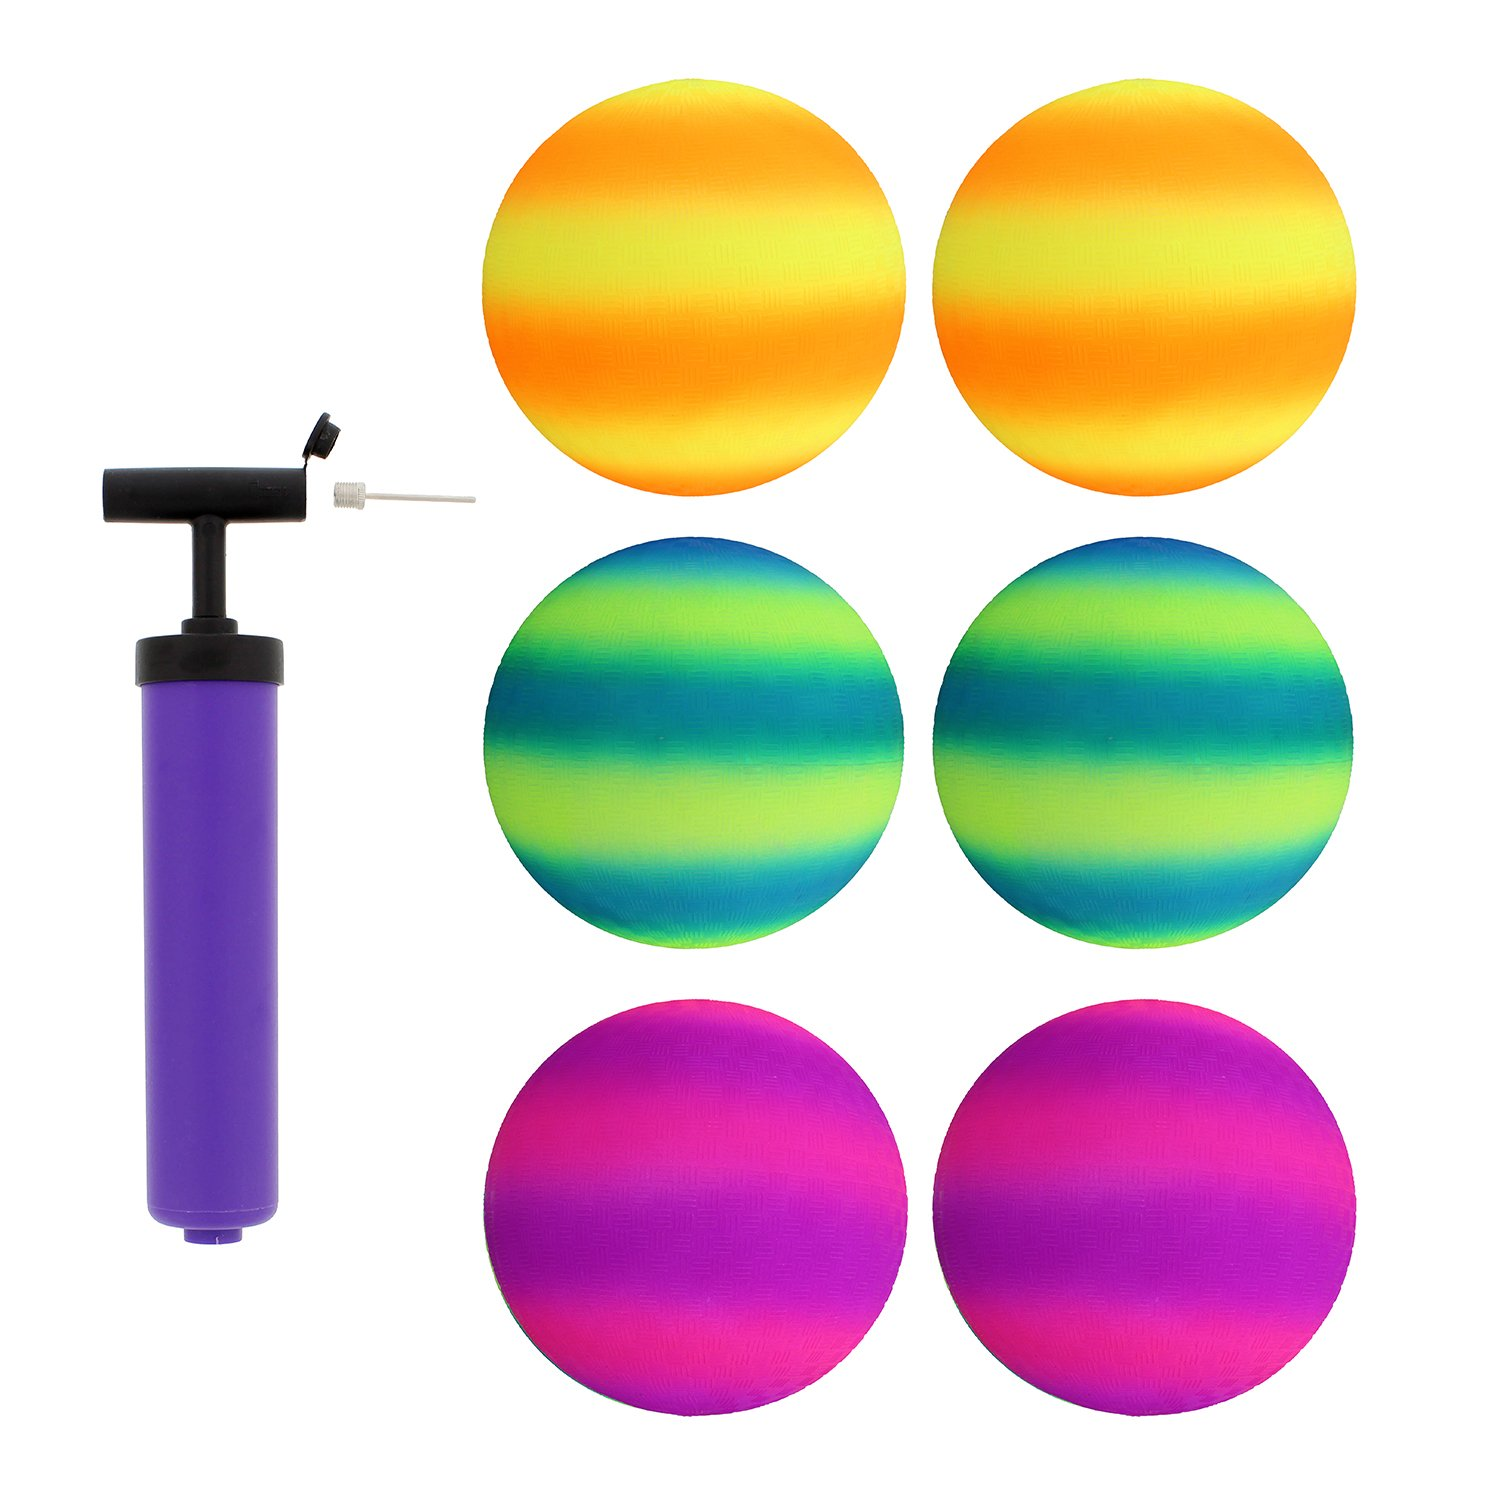 Get Out! Rubber Play Ball 6pk & Inflator, 8.5in (3) 2-Toned Pairs - Small Playground Ball Four Square Balls & Pump